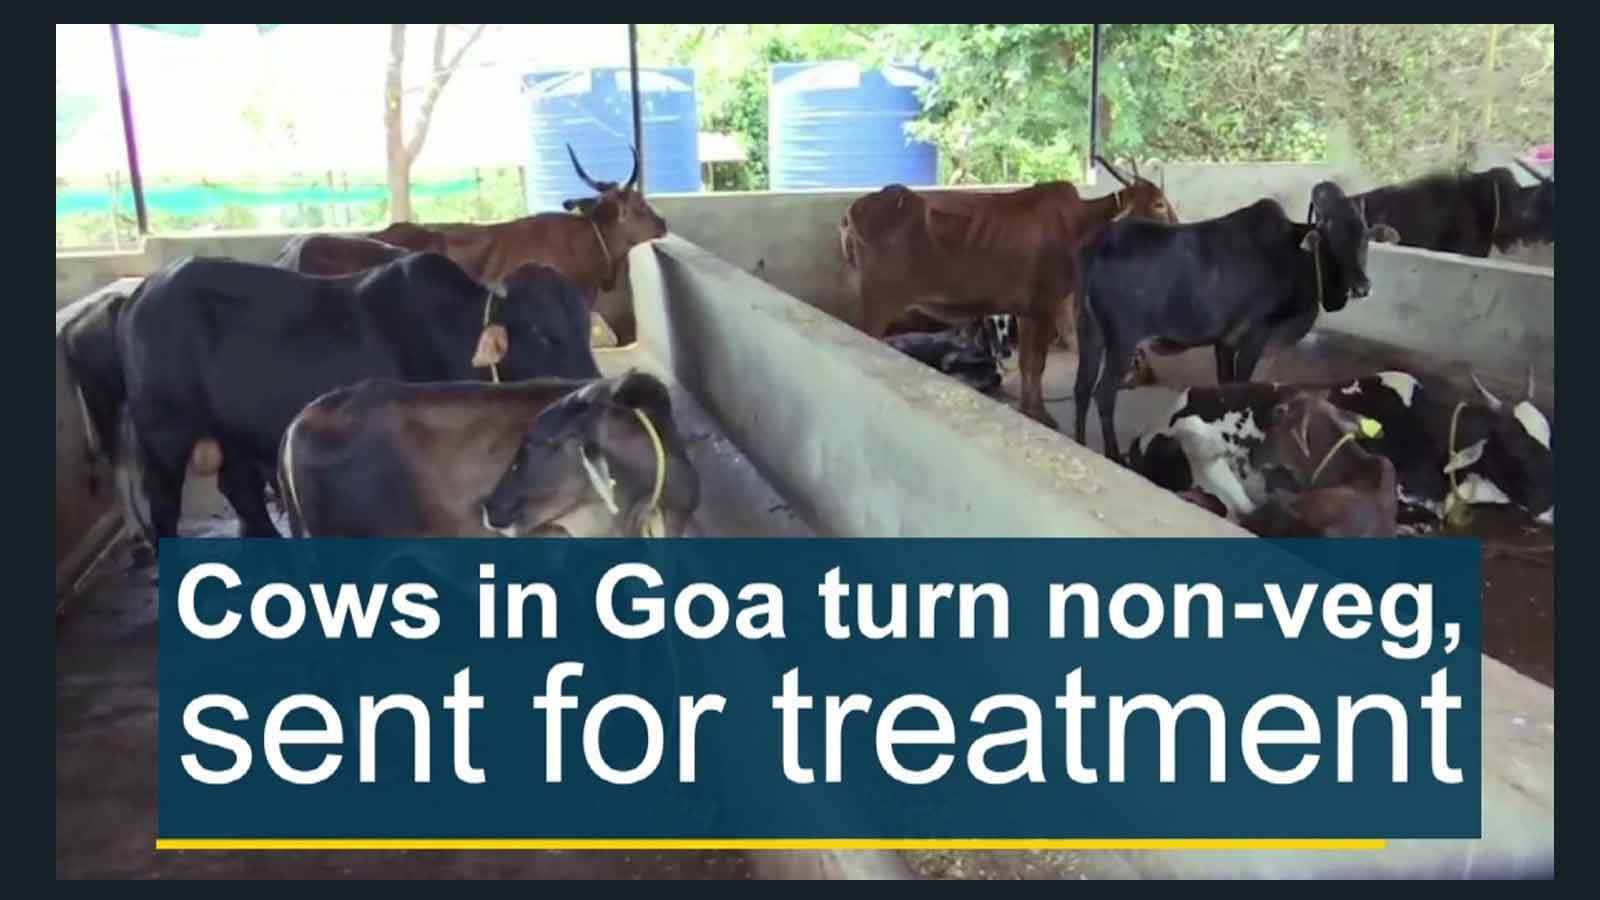 cows-in-goa-turn-non-veg-sent-for-treatment